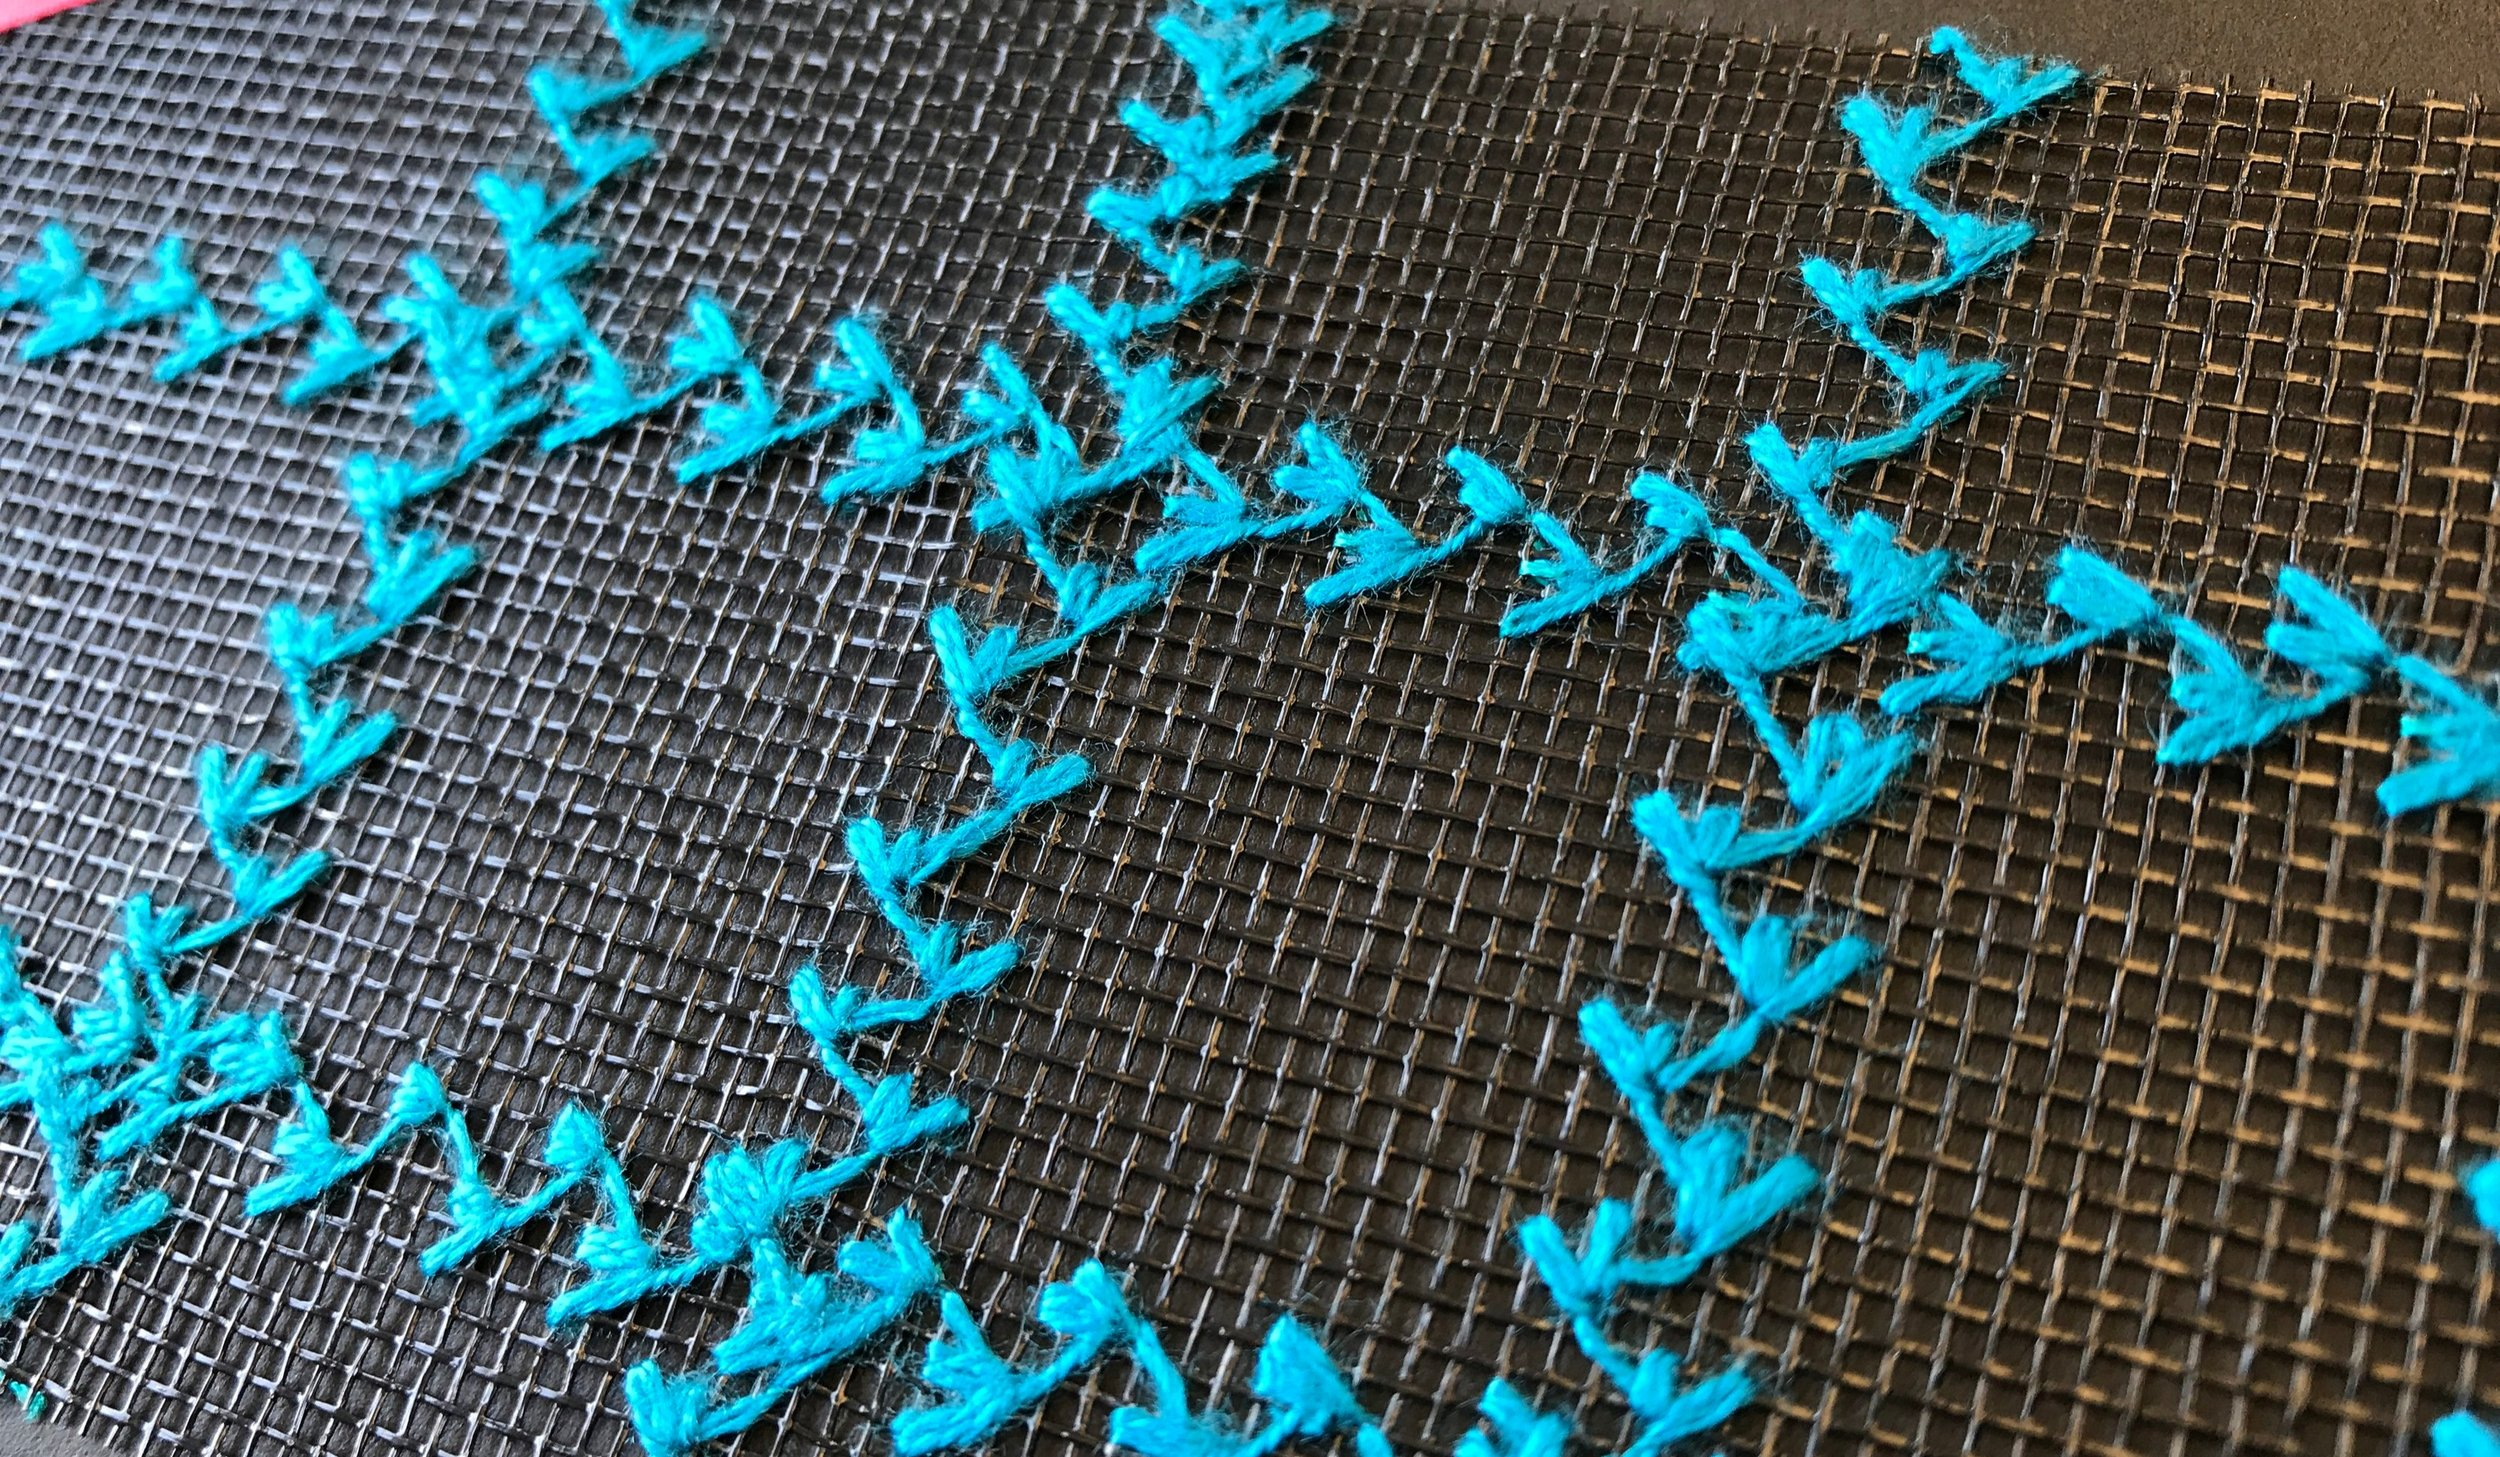 Decorative seams made of wool-like effect thread (Gunold's FILAINE) on a nylon grid material